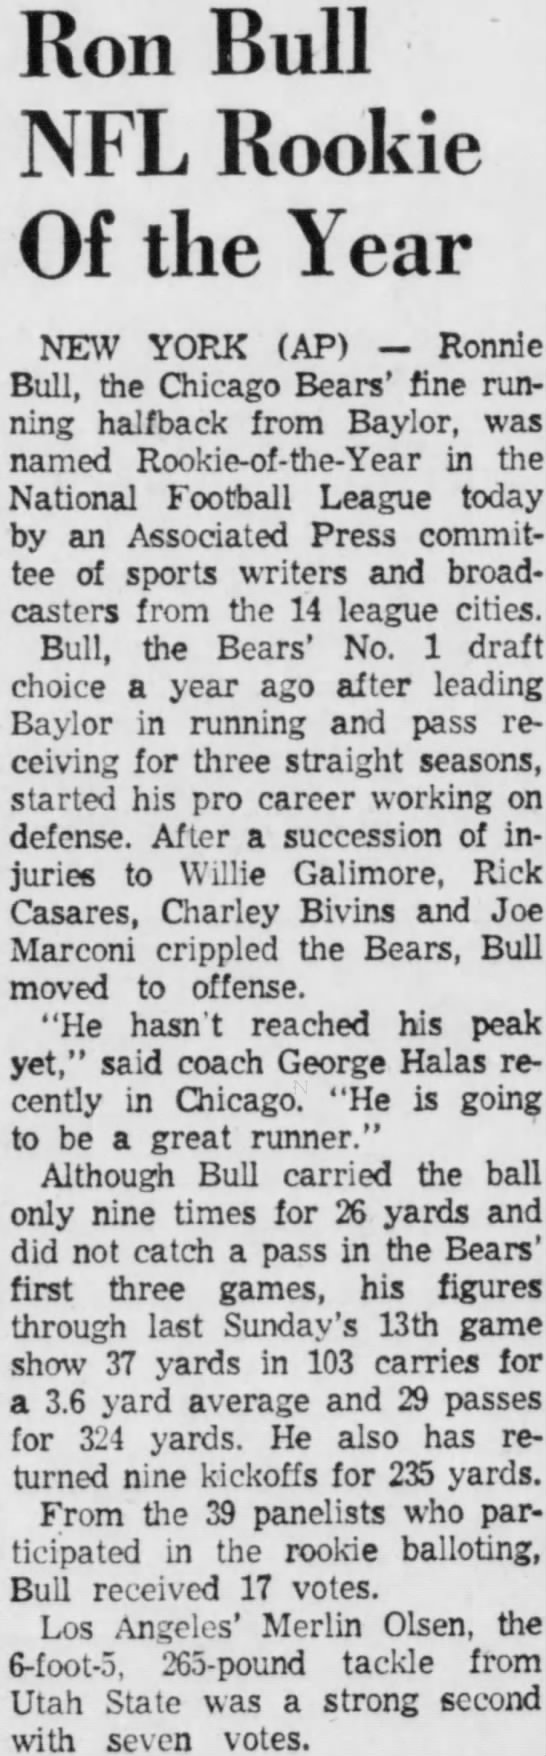 Ron Bull NFL Rookie Of the Year -